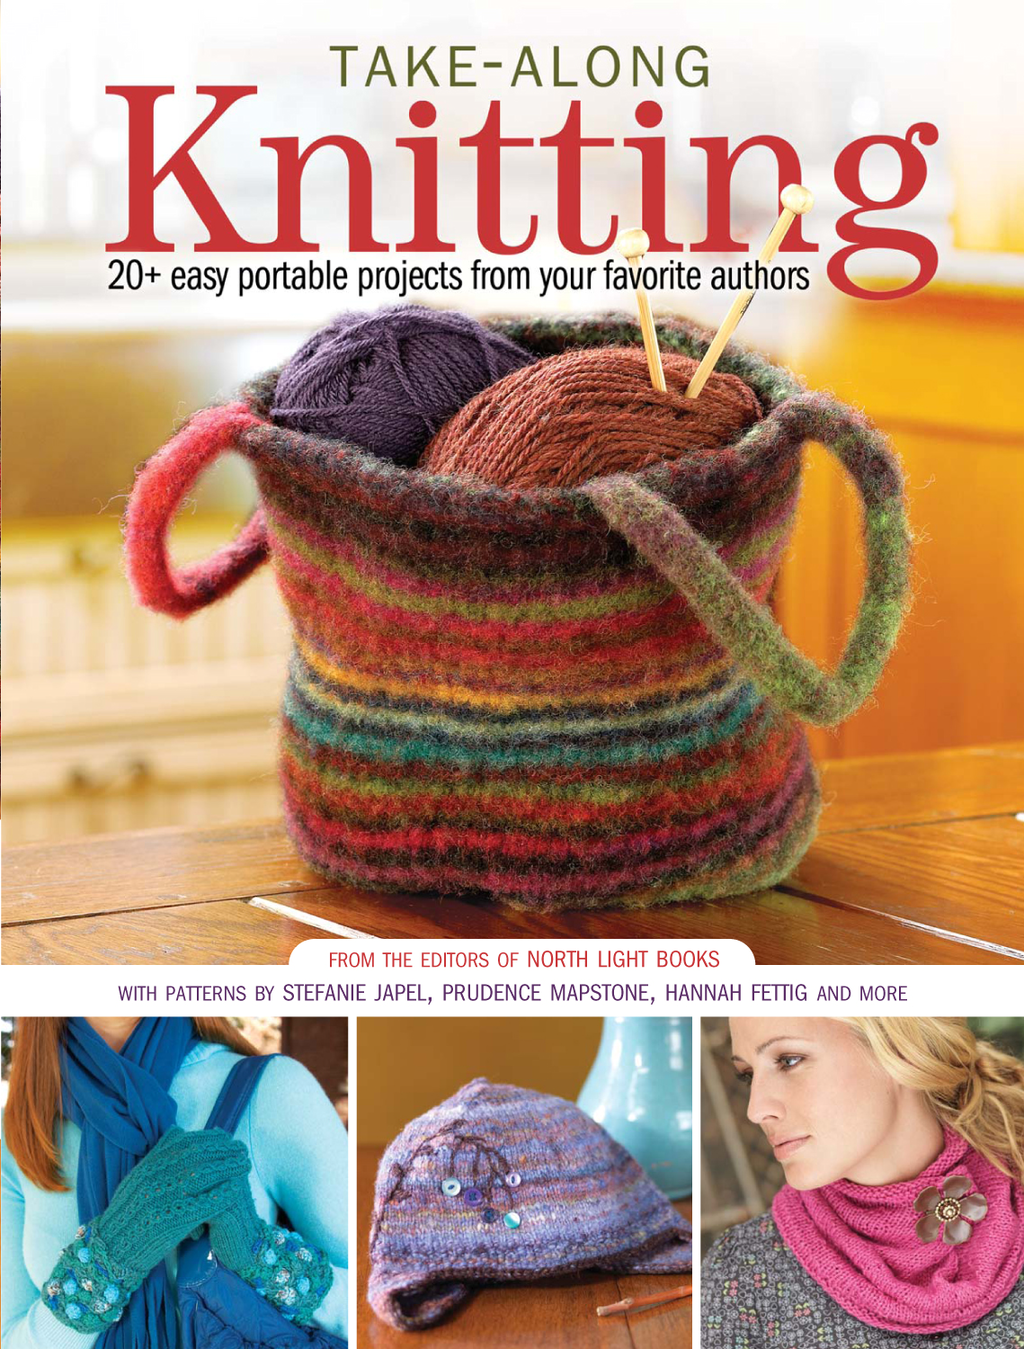 Take-Along Knitting By: Editors of North Light Books